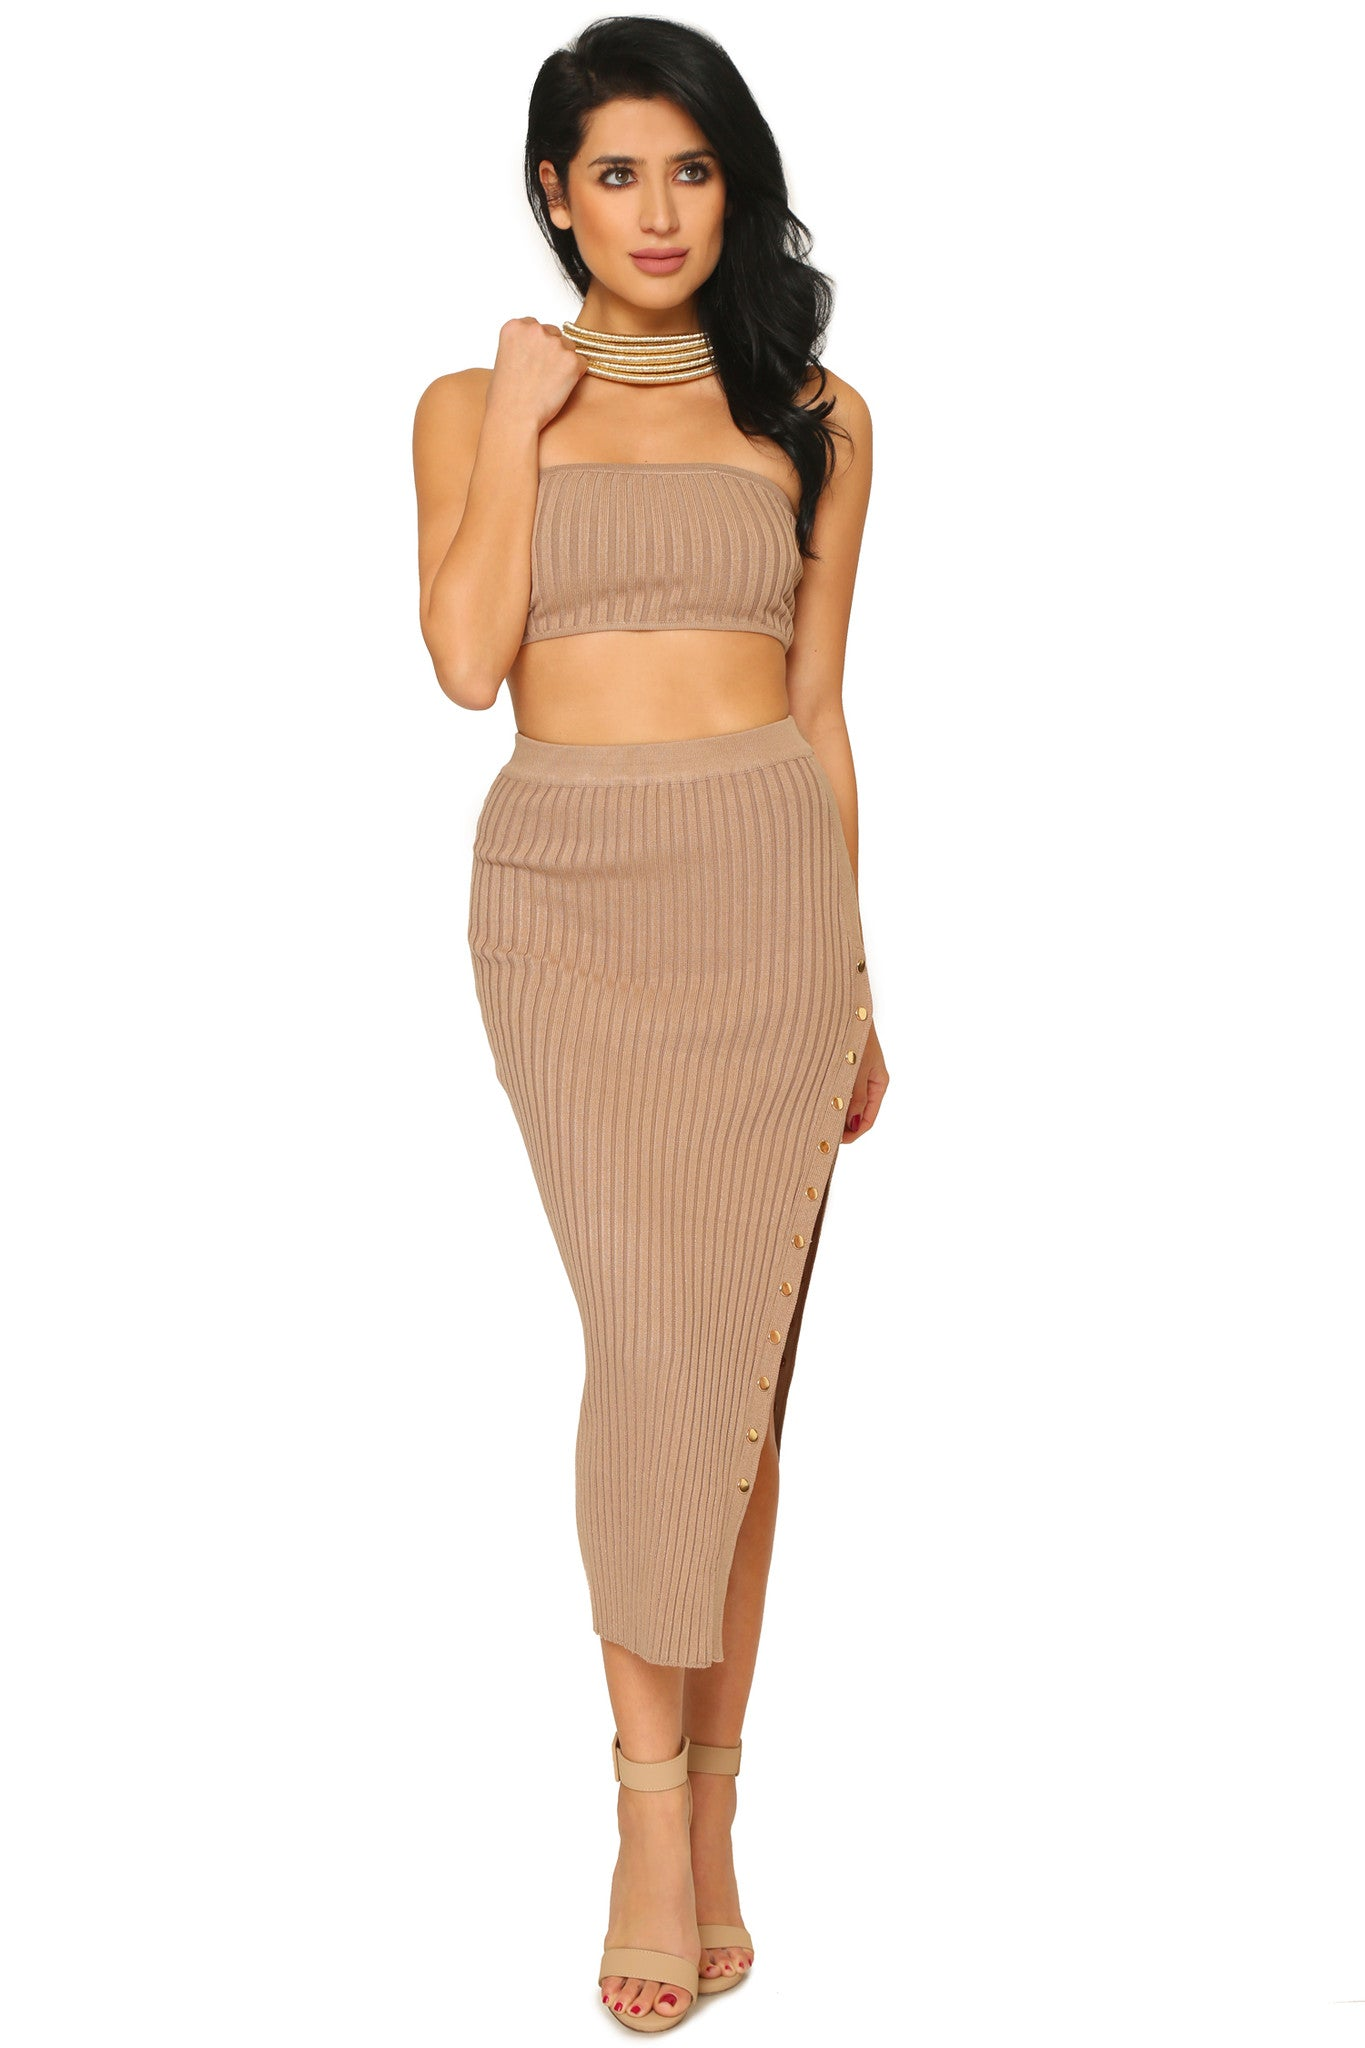 GISELLE CROP TOP AND SKIRT (SOLD SEPARATELY) - Glam Envy - 1